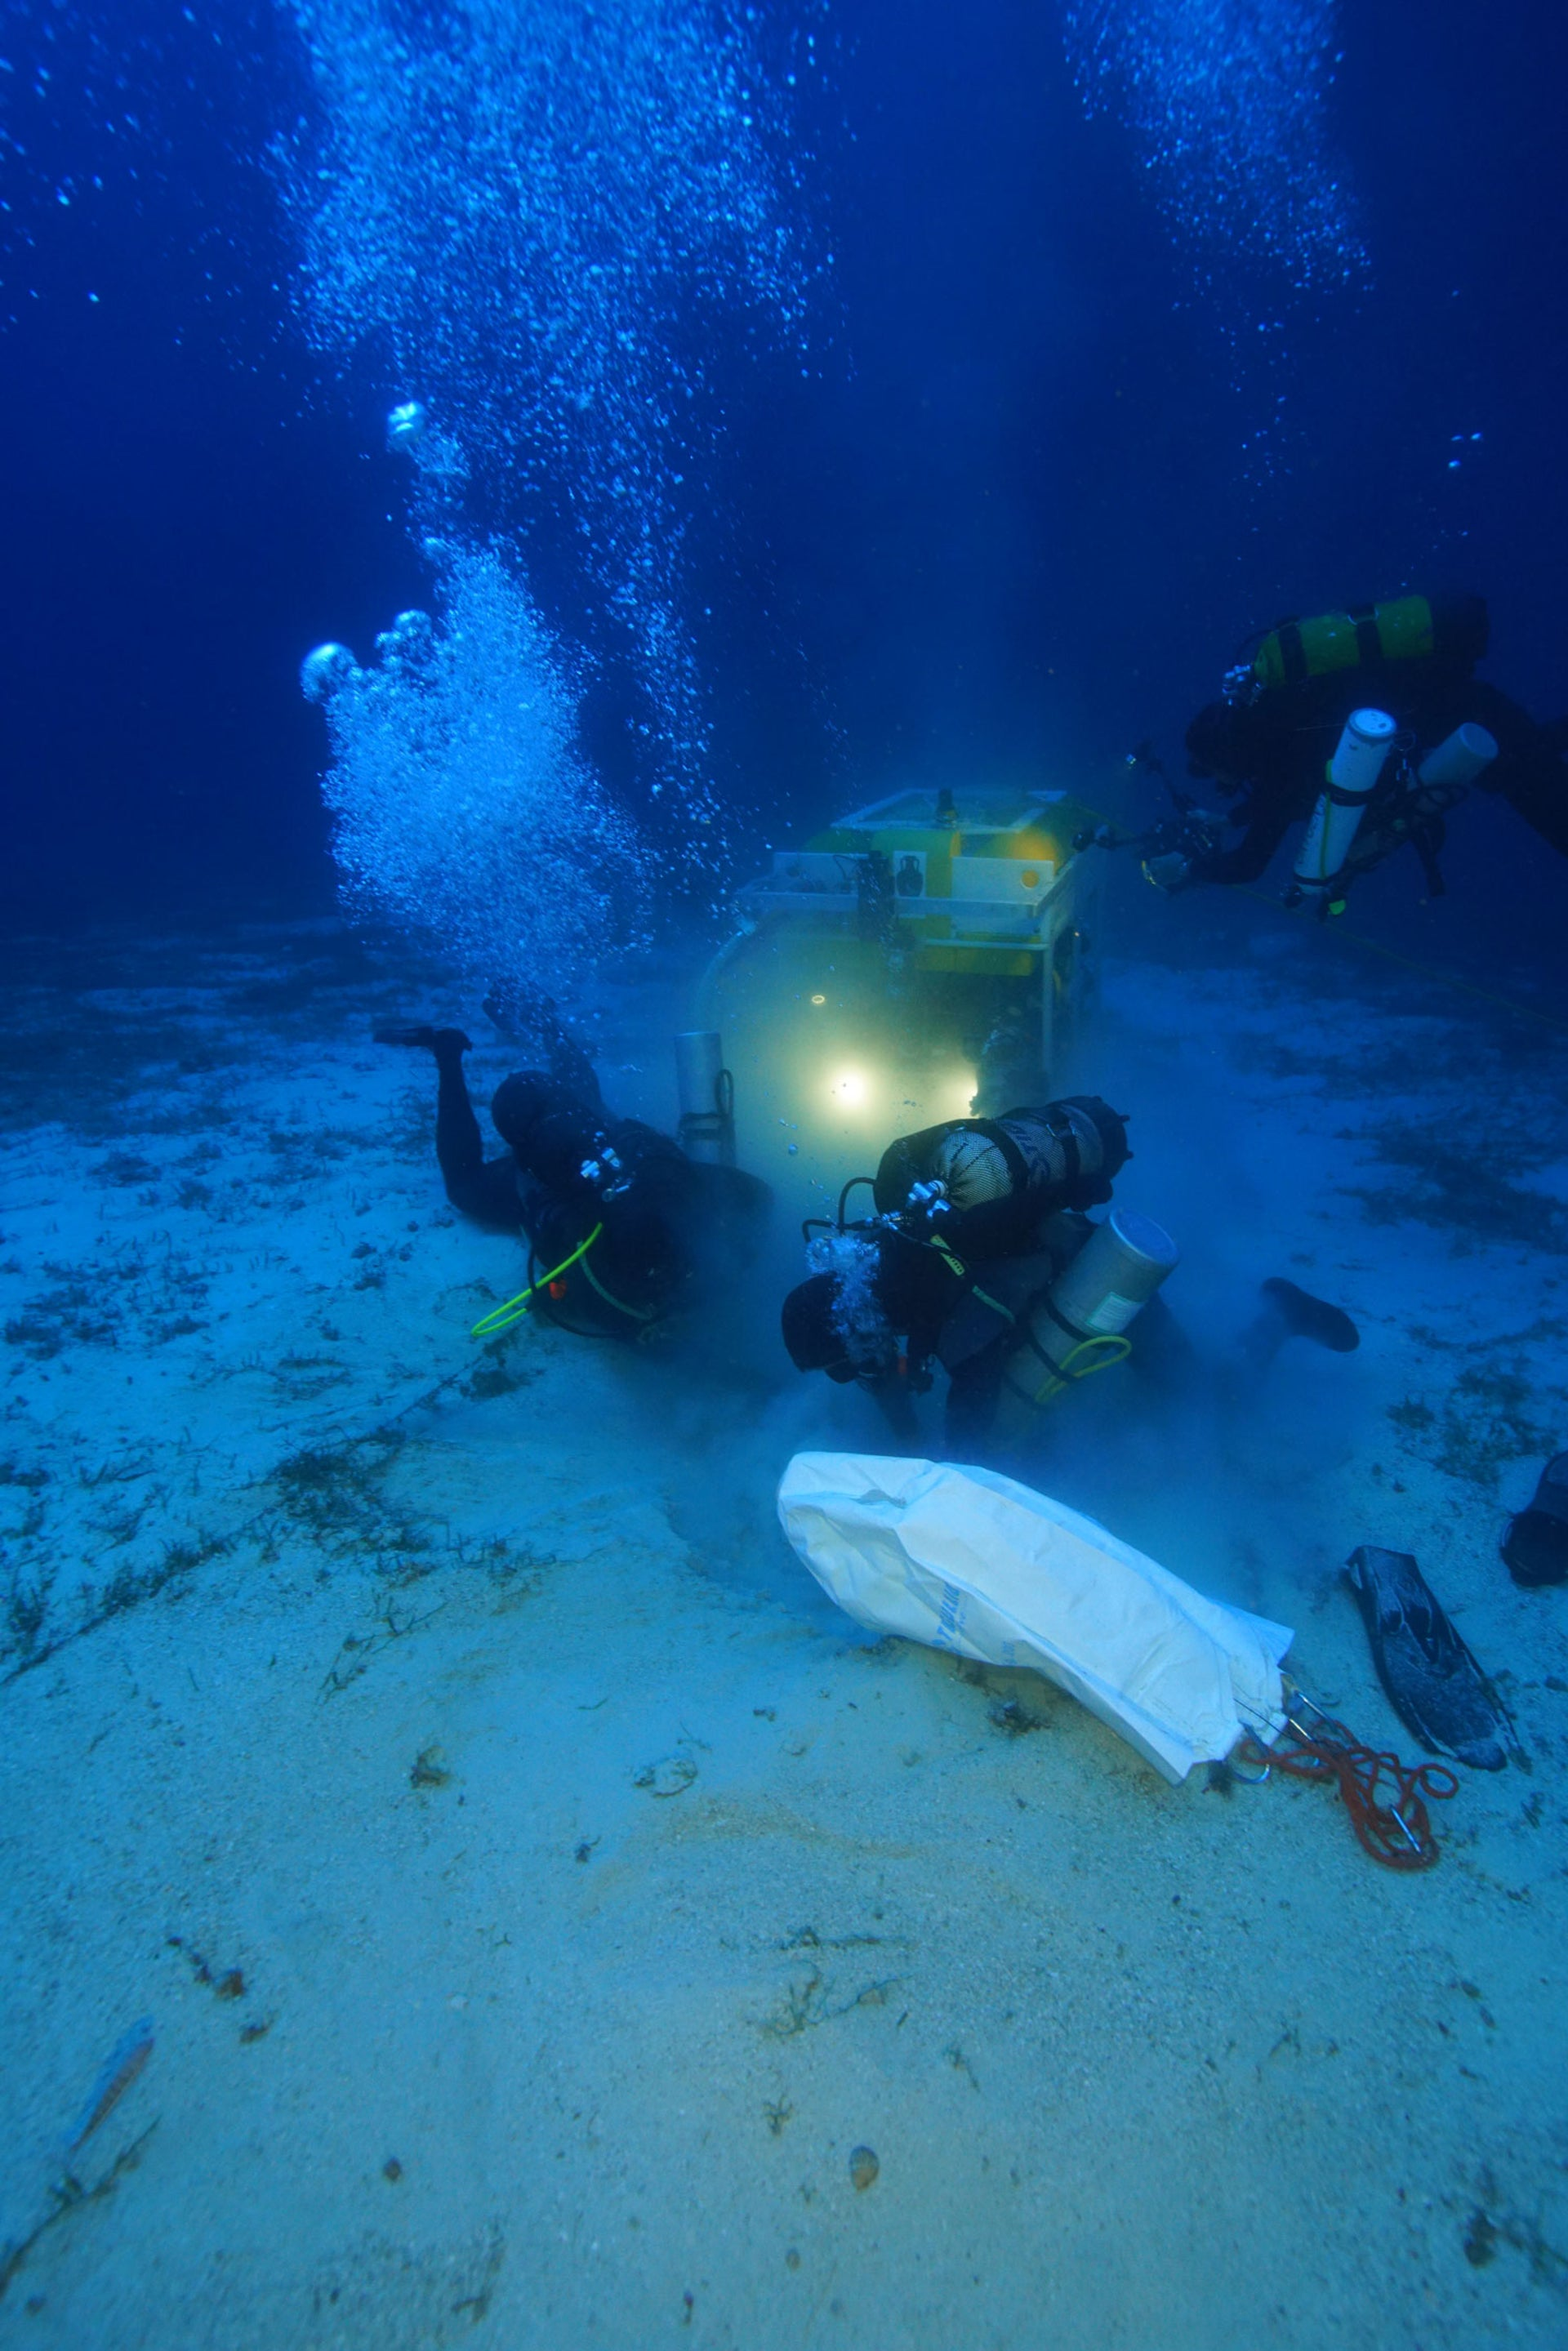 Archaeologists and the ROV robot work to recover an ancient North African amphora.